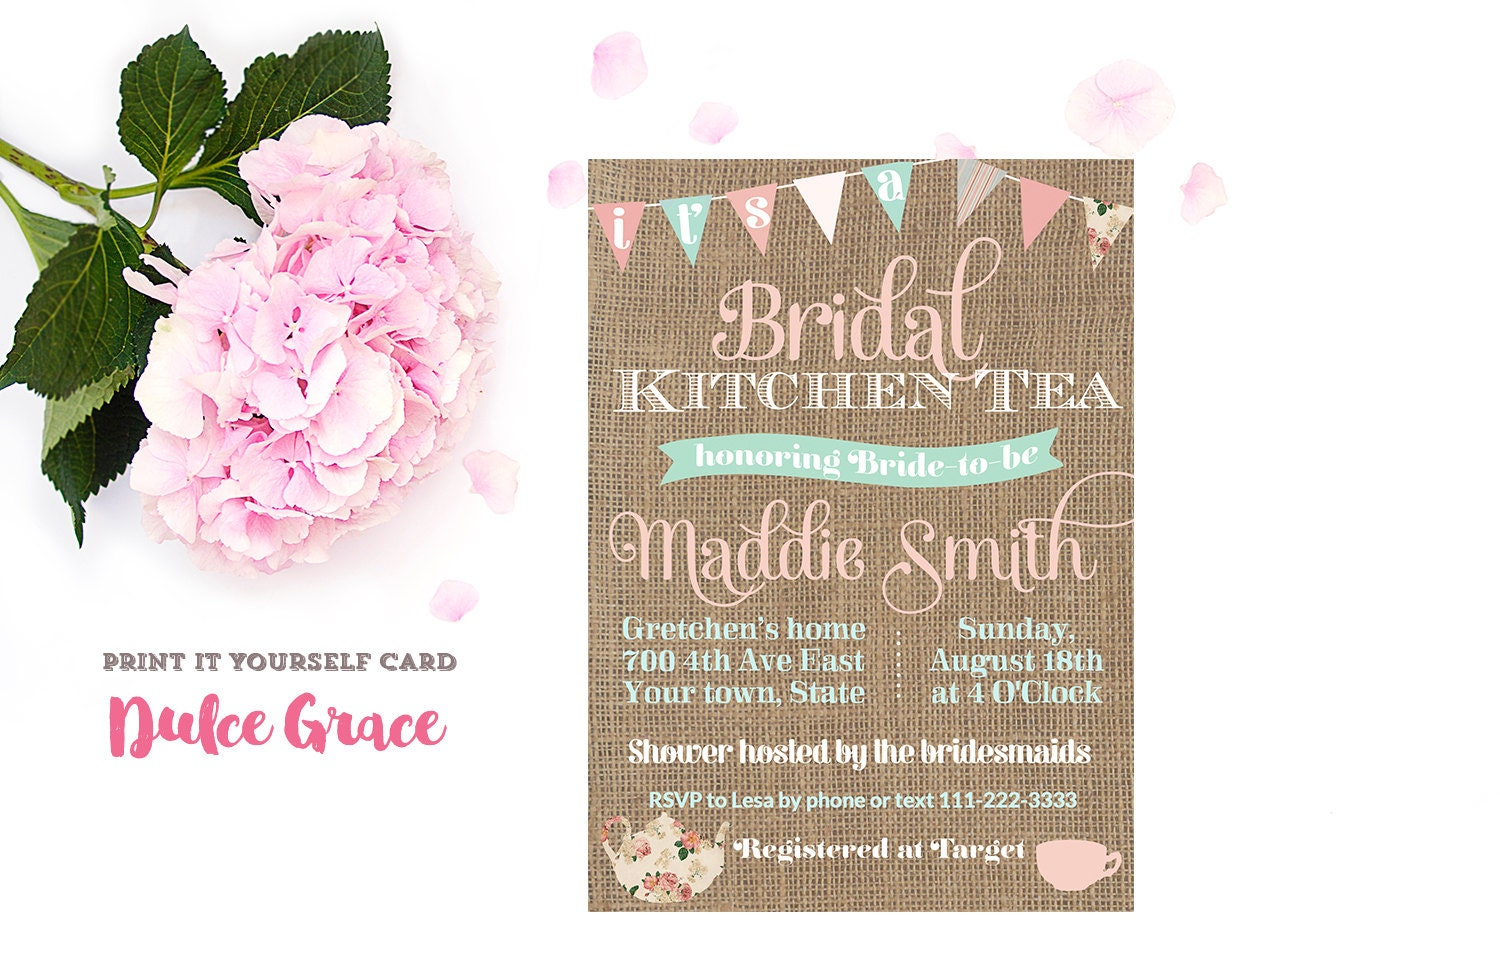 Kitchen Tea Invites Bridal Shower Invitations Bridal Kitchen Tea Invite Bridal